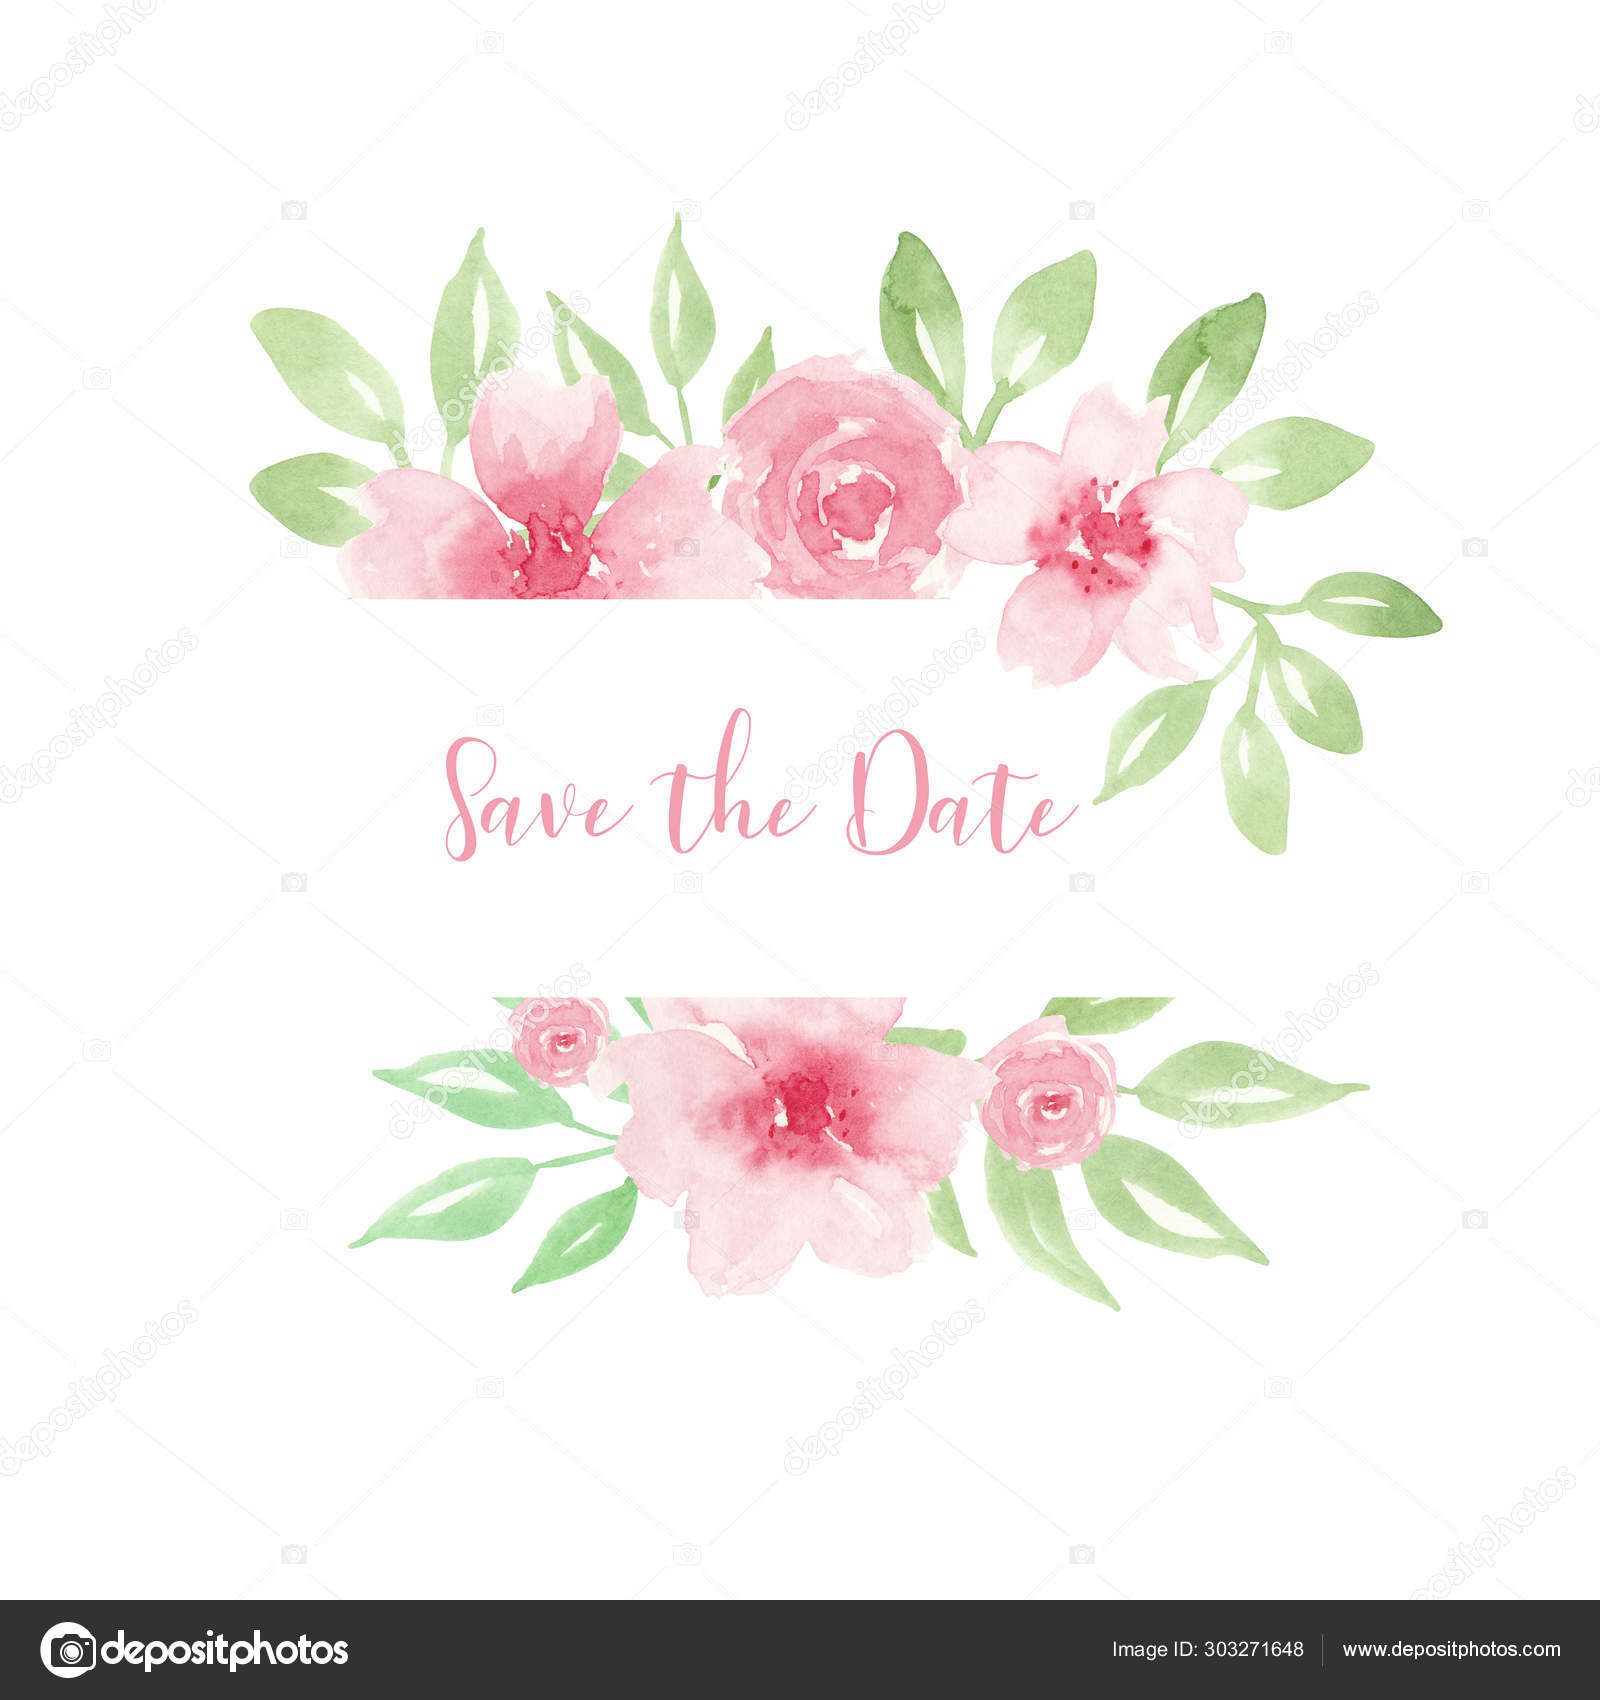 Wedding Invitation Save The Date Card Design With Light